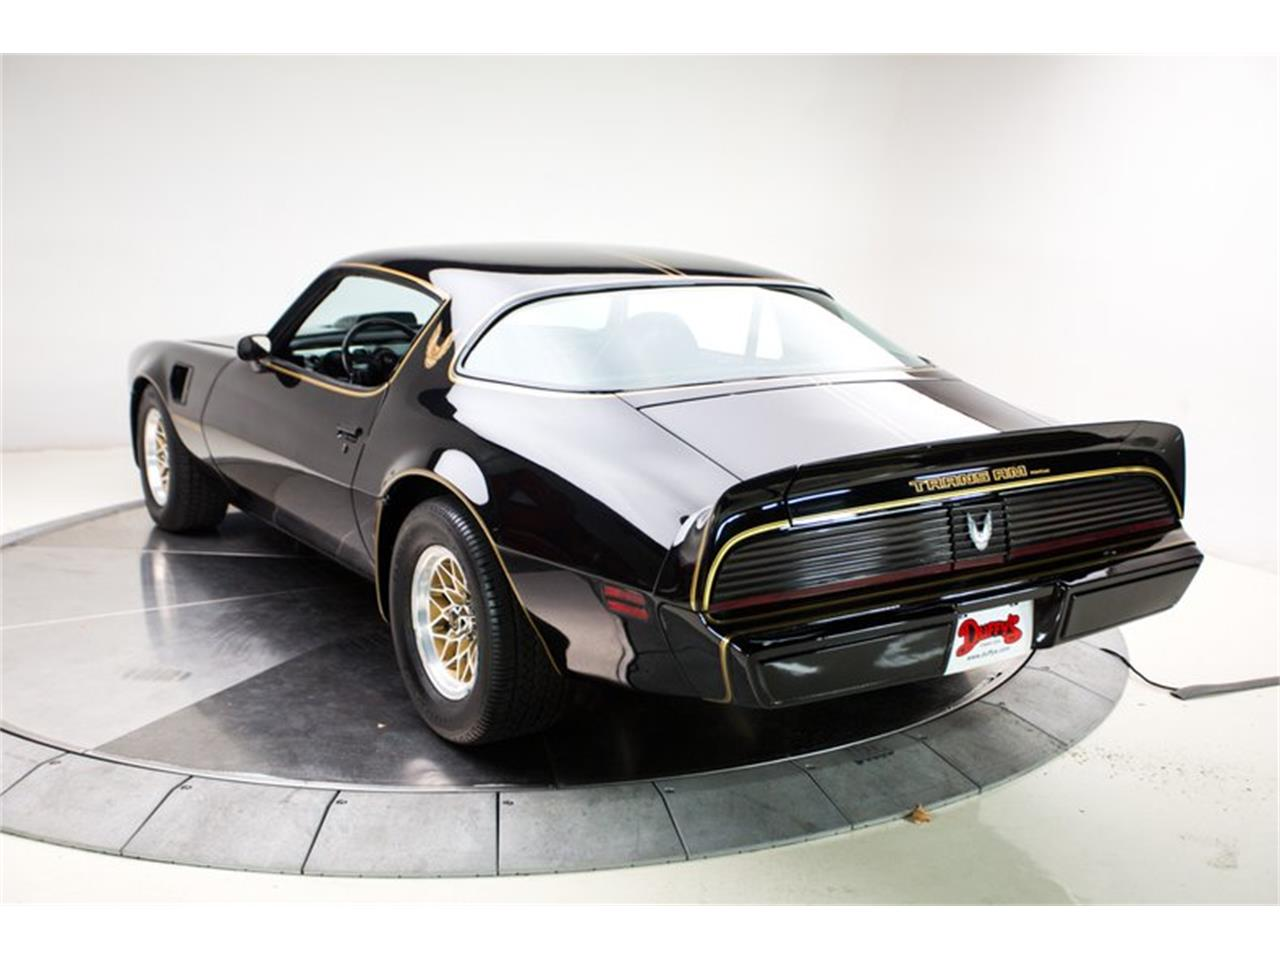 Large Picture of 1981 Firebird Trans Am - $29,950.00 - OV9G